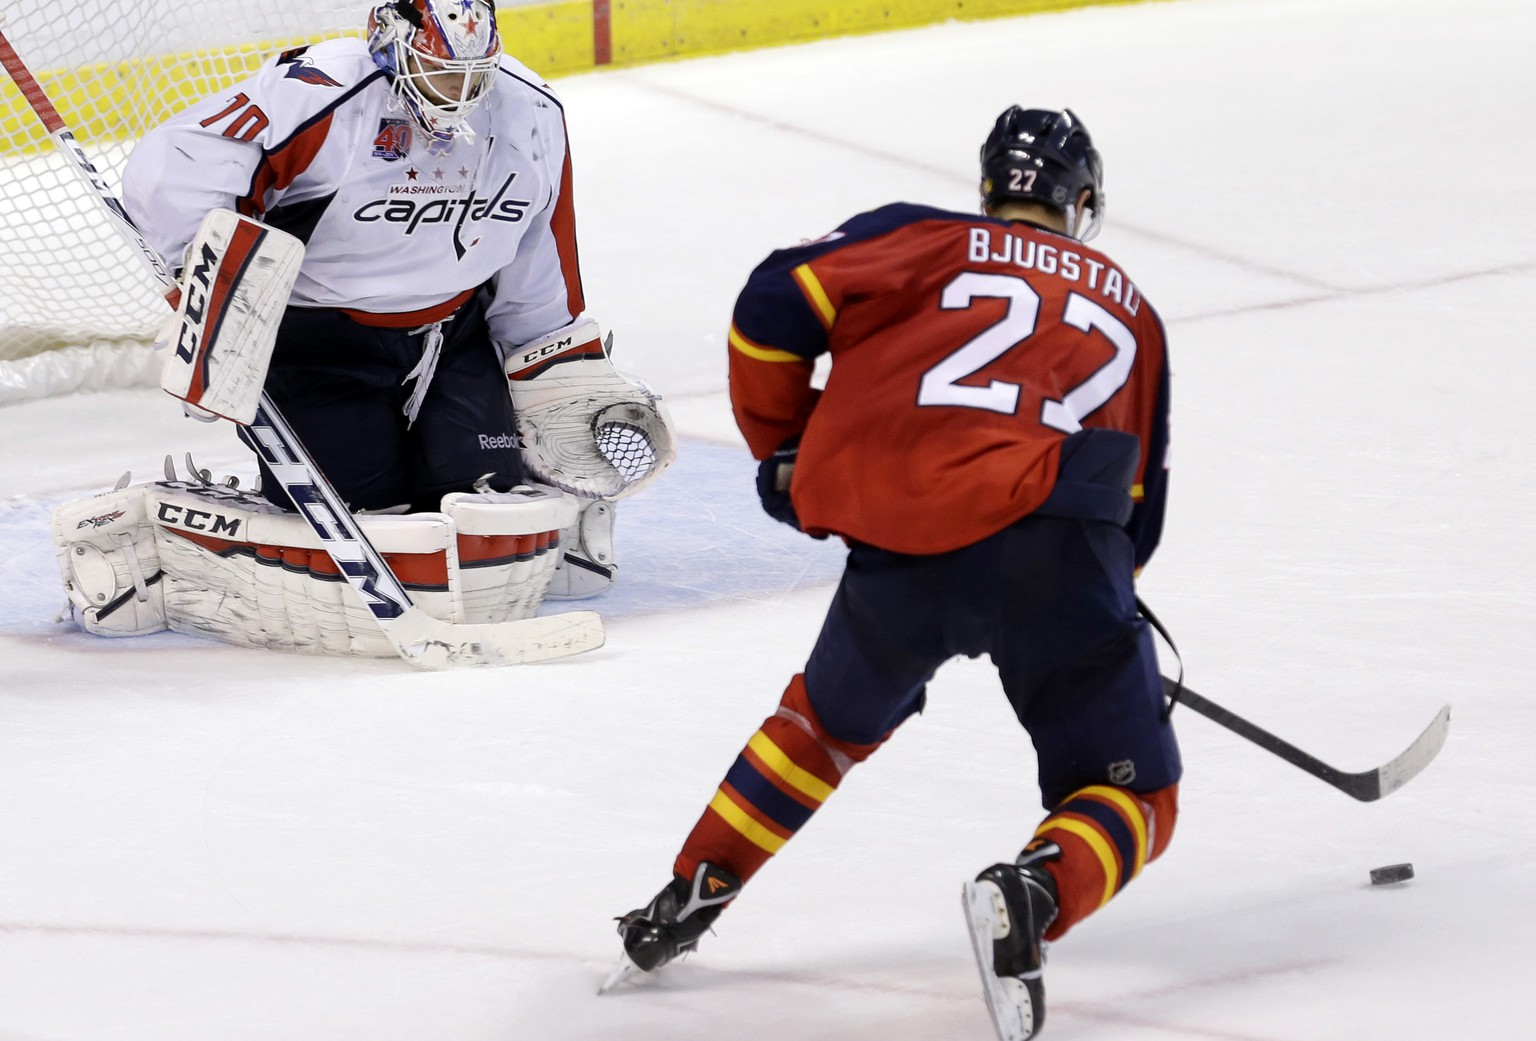 Florida Panthers center Nick Bjugstad (27) prepares to score against Washington Capitals goalie Braden Holtby (70) in the 20th round of a shootout, the longest shootout in the history of an NHL hockey game, in Sunrise, Fla., Tuesday, Dec. 16, 2014. The Panthers won 2-1. (AP Photo/Alan Diaz)